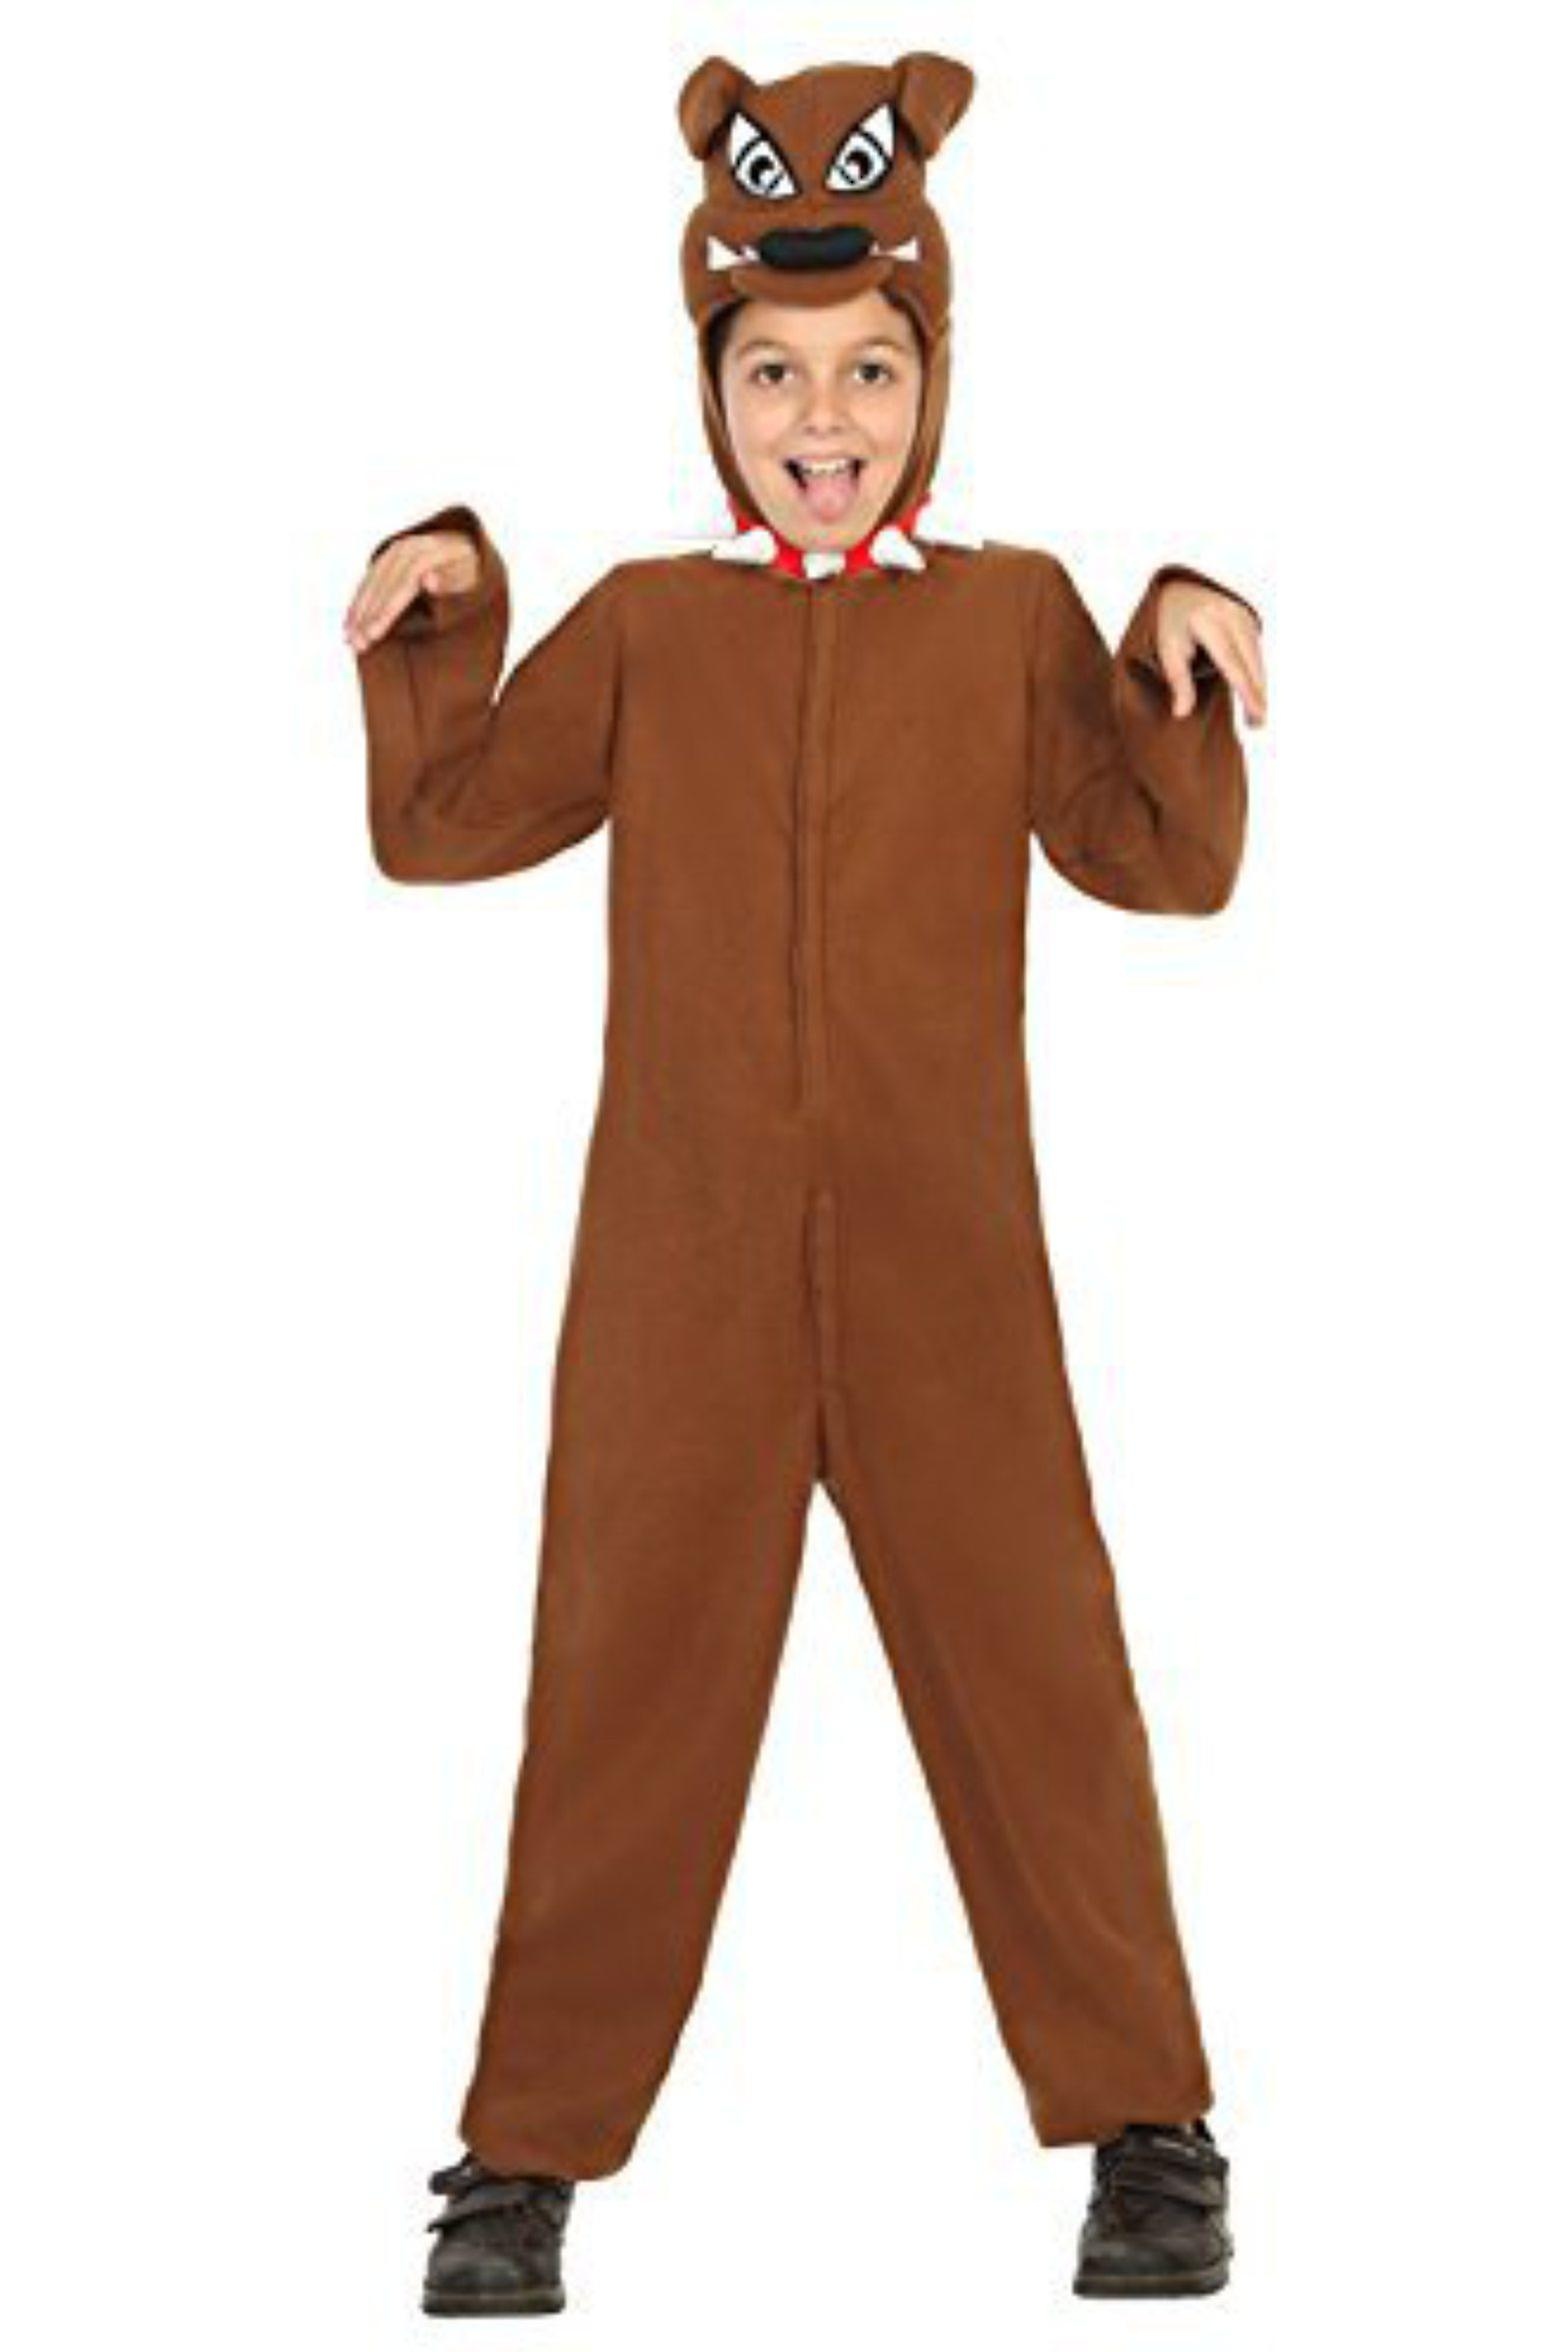 Animal costumes Children Dog dress up costume Brown for kids  sc 1 st  Fruugo & Animal costumes Children Dog dress up costume Brown for kids | Fruugo